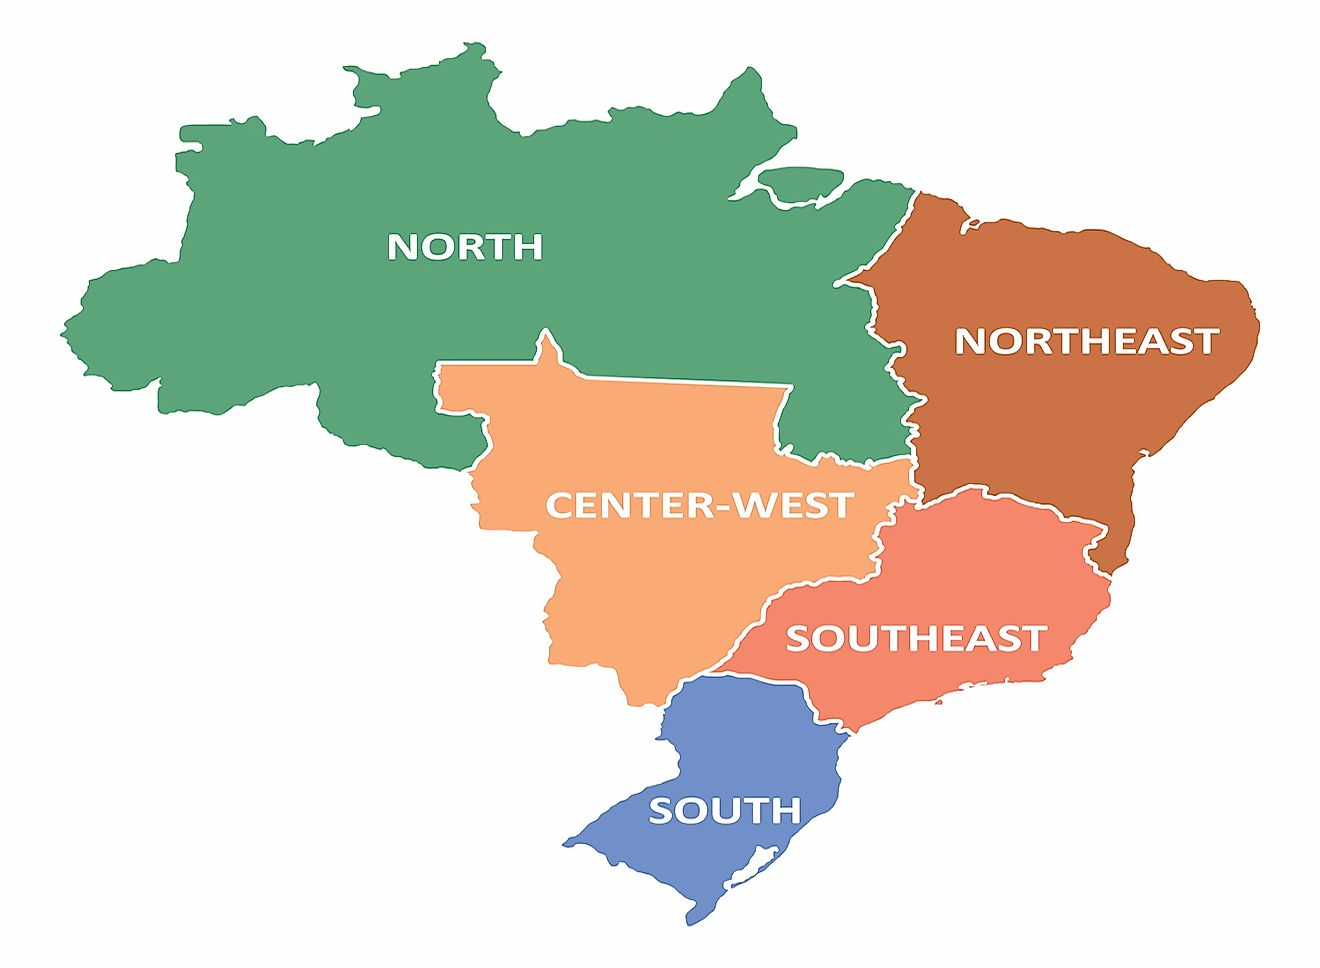 A map showing the five regions of Brazil. Image credit: Luisrftc/Shutterstock.com